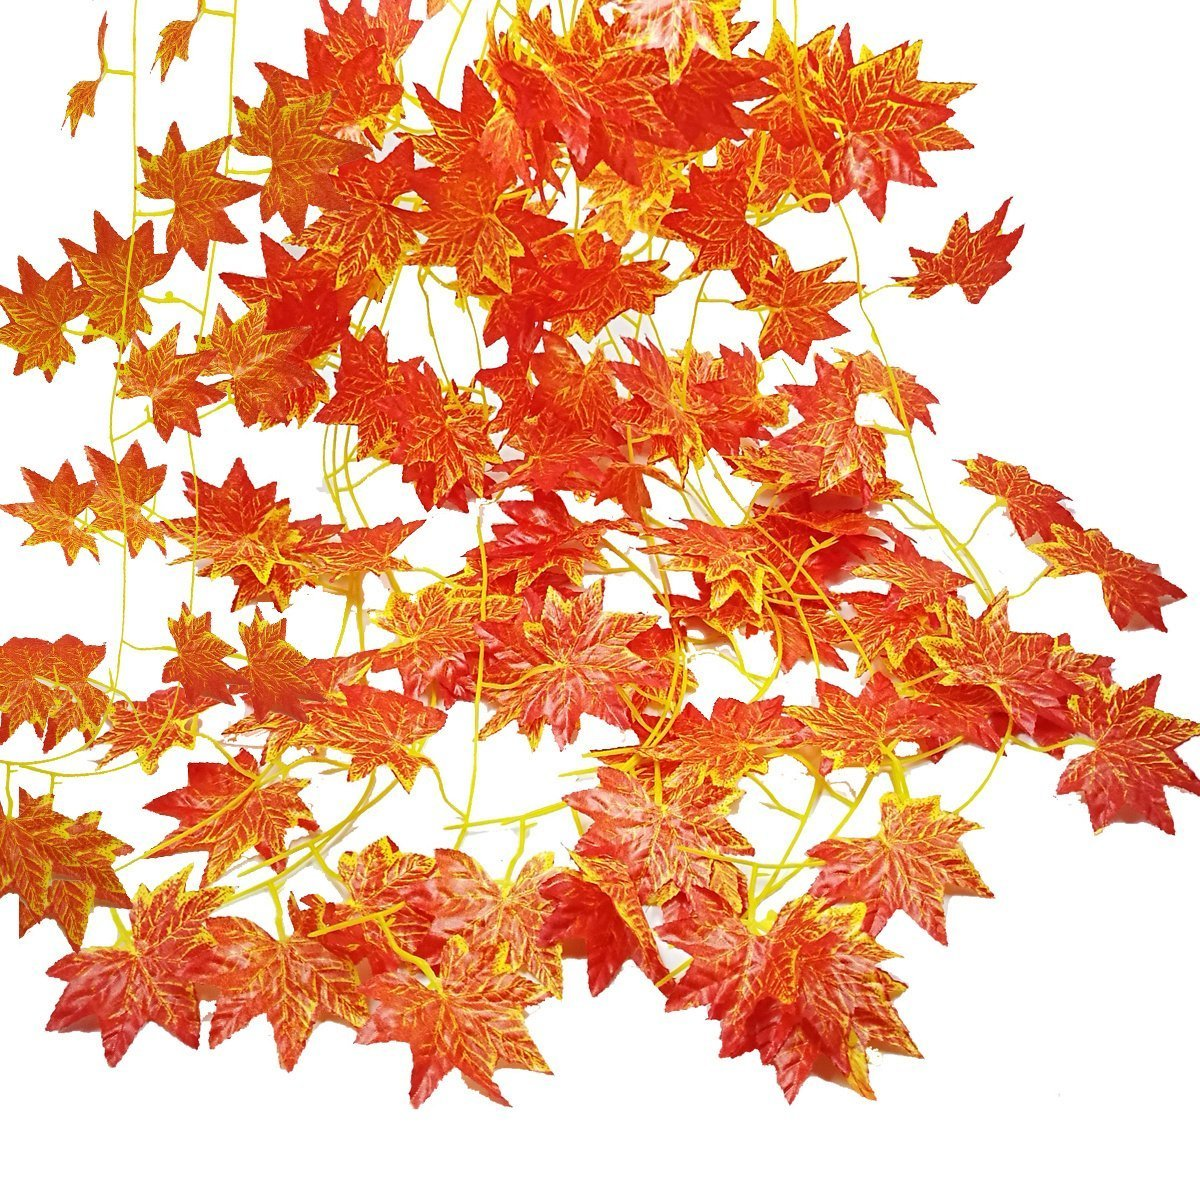 Autumn Garland, GoFriend 12 Strands (90 Feet) Artificial Maple Leaves Red Maple Vine Ivy Greenery Fall Decoration Hanging Plant for Autumn and Thanksgiving